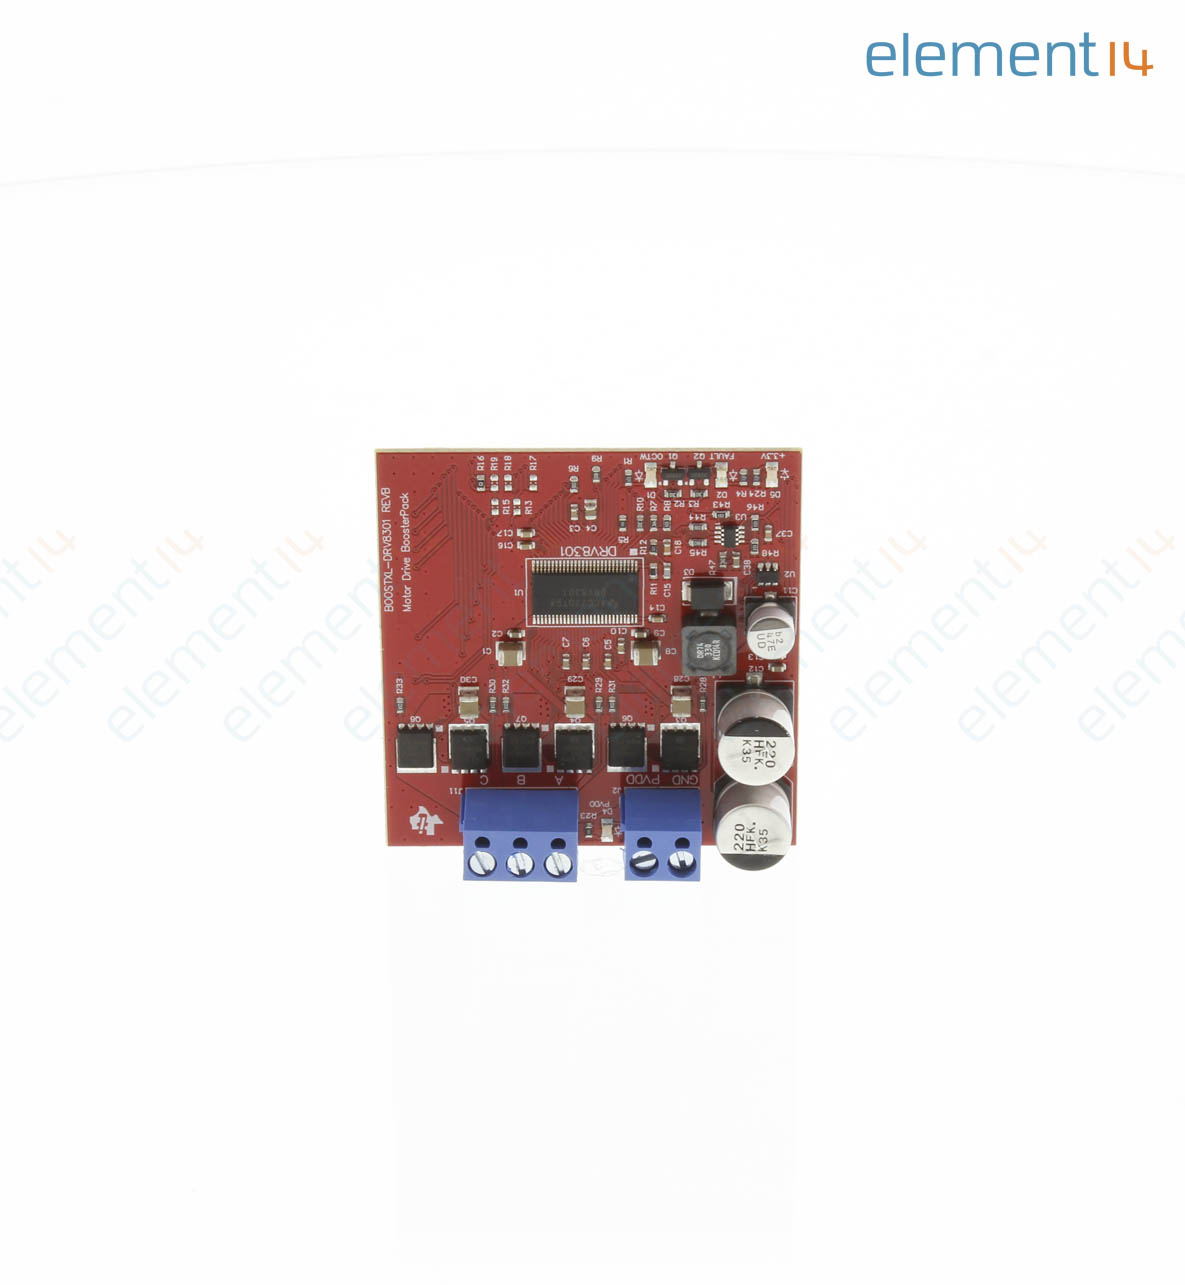 Boostxl Drv8301 Texas Instruments Evaluation Board 3 Phase Re How Do I Control A Mosfet With An Optical Reflector Richmedia 2700b En